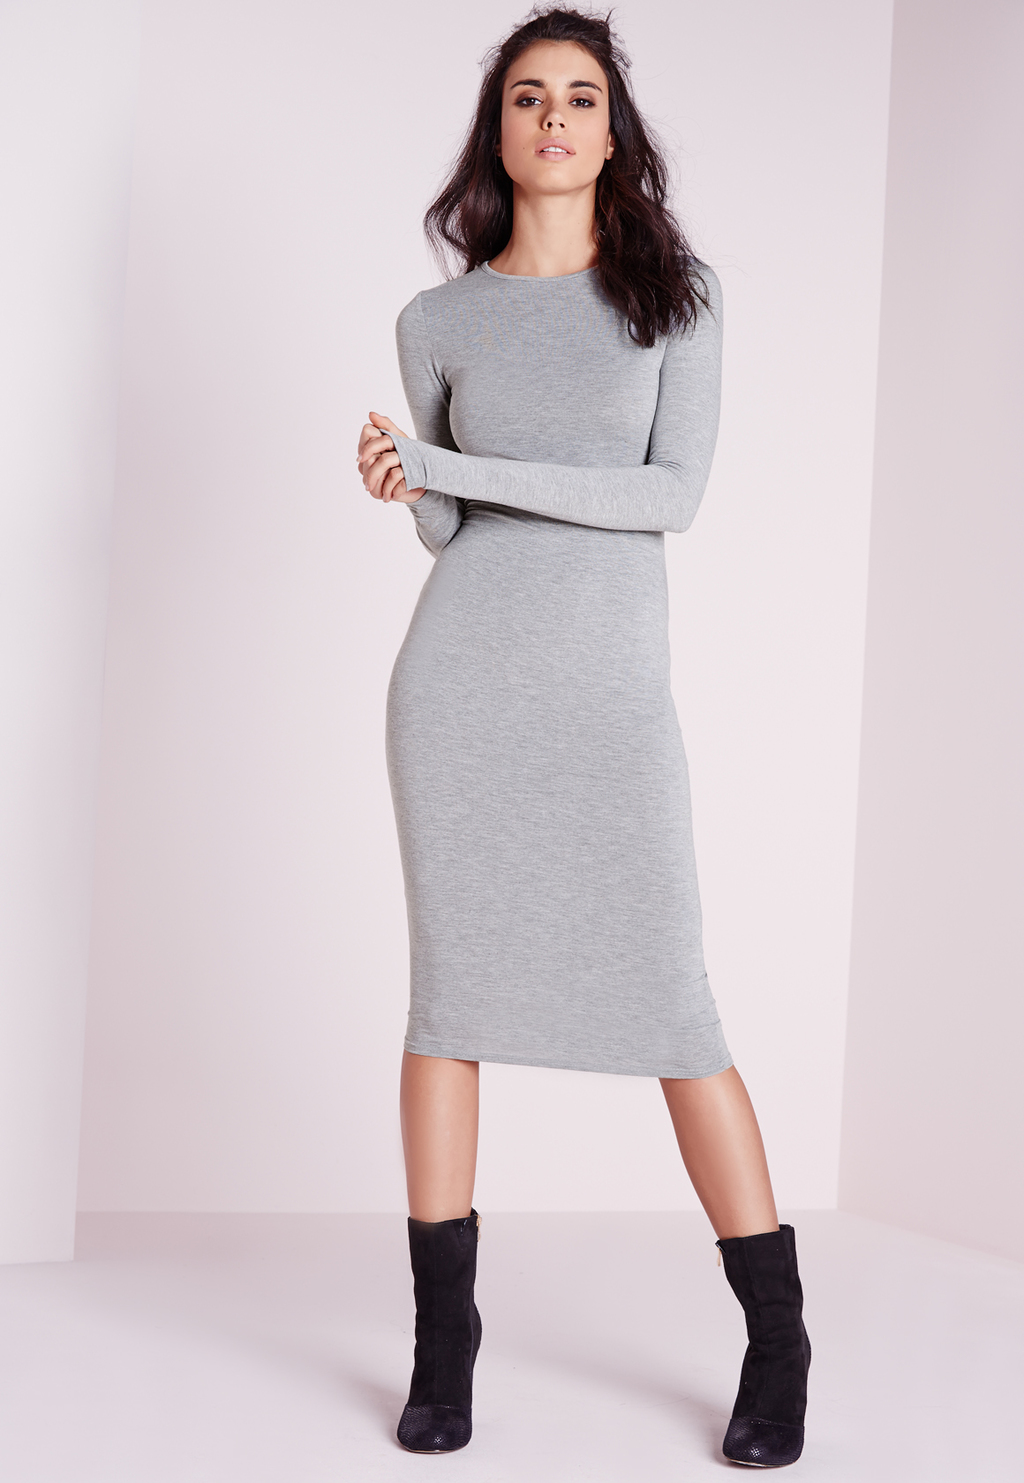 Jersey Bodycon Midi Dress Grey Marl, Grey - length: below the knee; fit: tight; pattern: plain; style: bodycon; predominant colour: light grey; occasions: casual, creative work; fibres: viscose/rayon - stretch; neckline: crew; sleeve length: long sleeve; sleeve style: standard; pattern type: fabric; texture group: jersey - stretchy/drapey; season: s/s 2016; wardrobe: basic